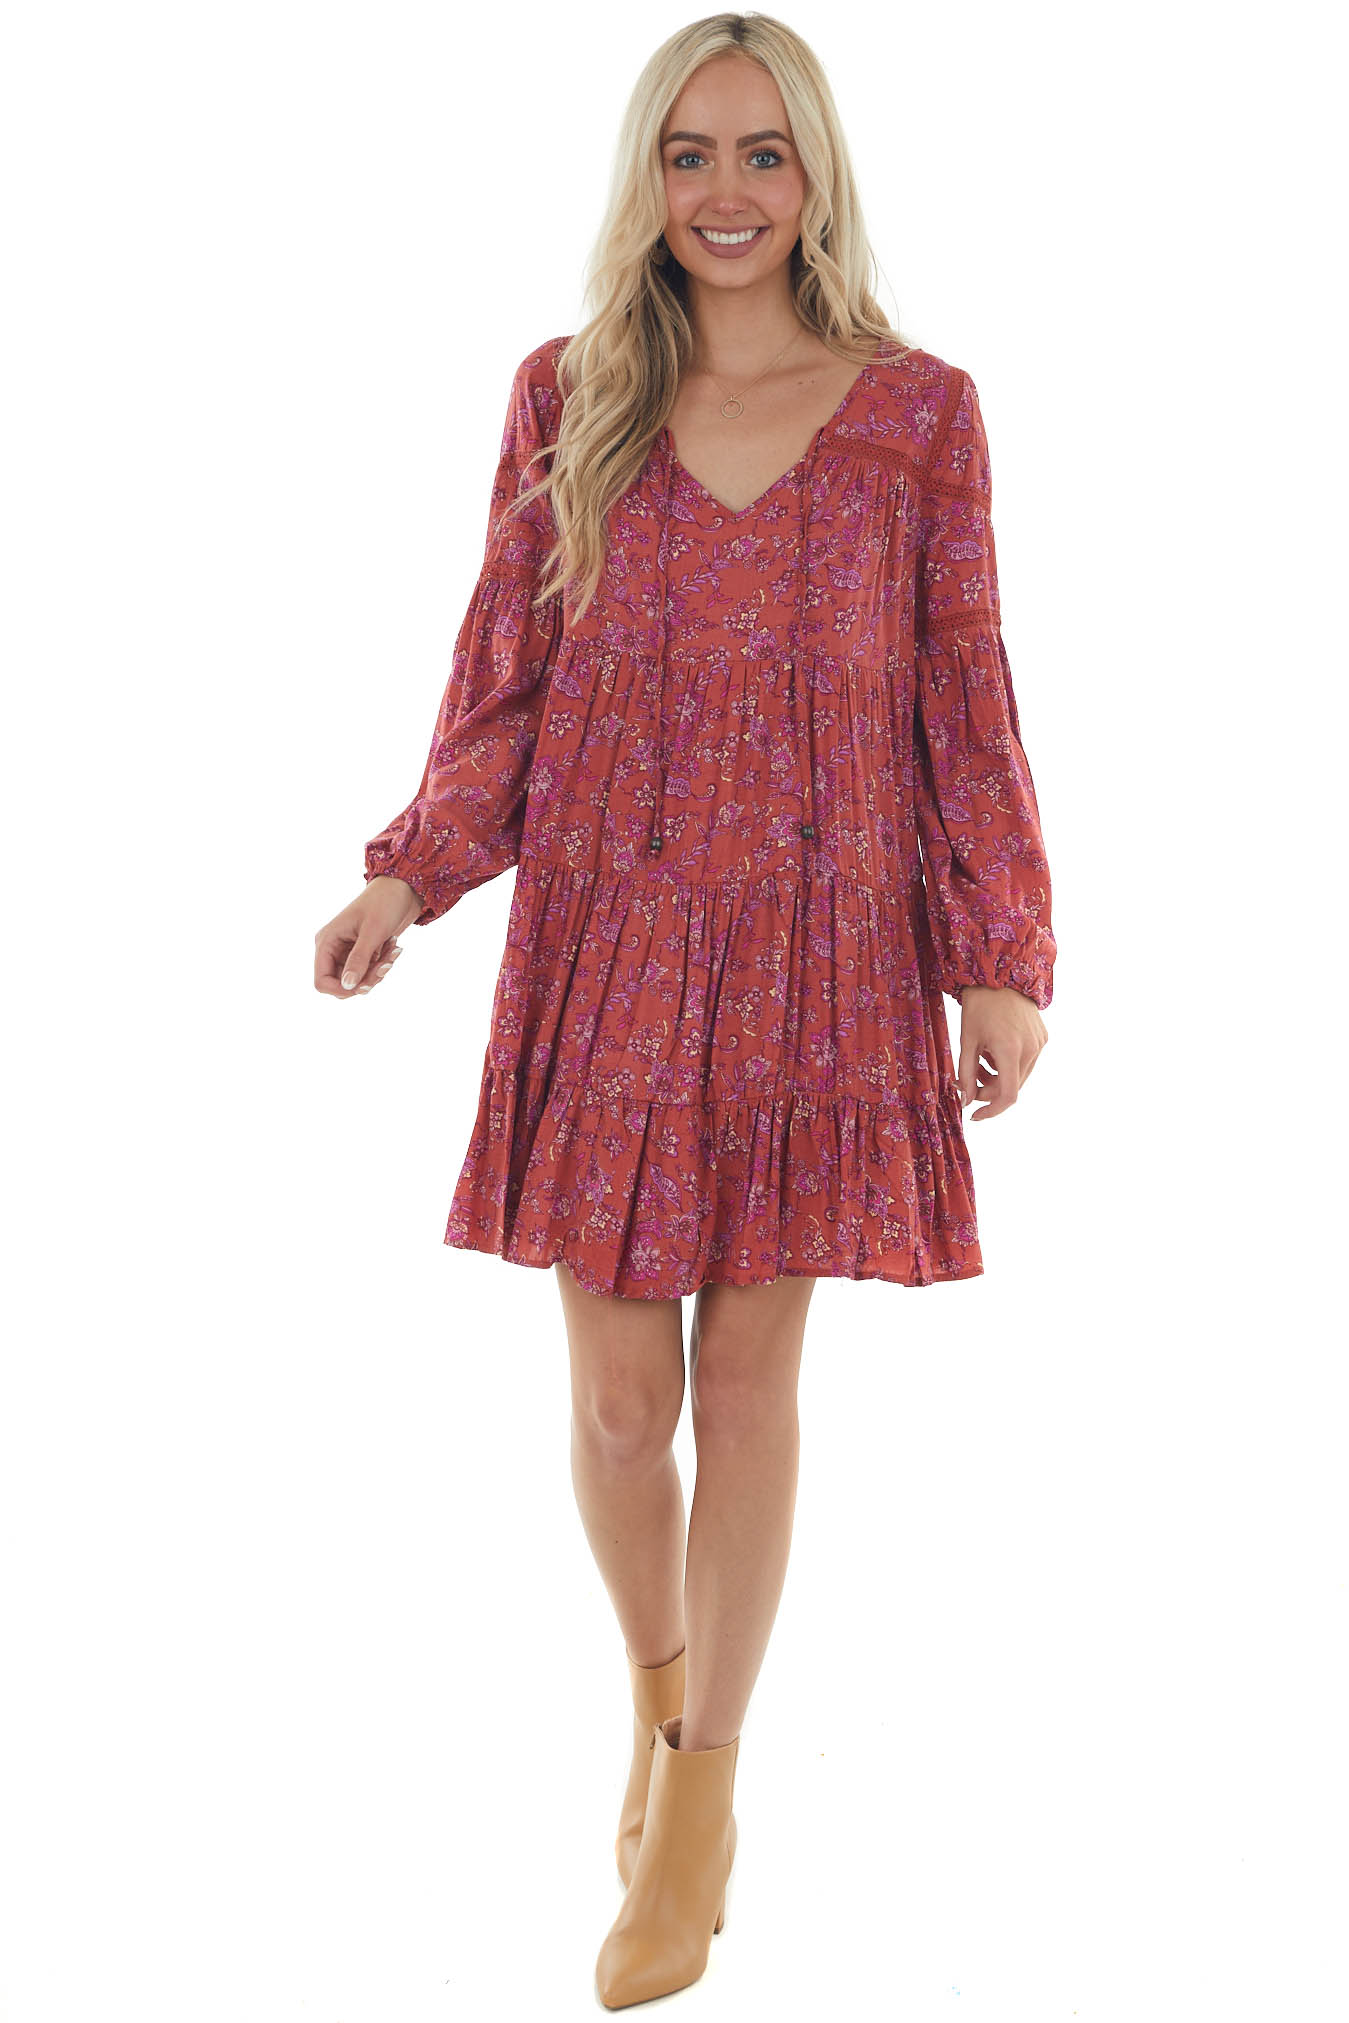 Rust Floral Print Mini Dress with Long Sleeves